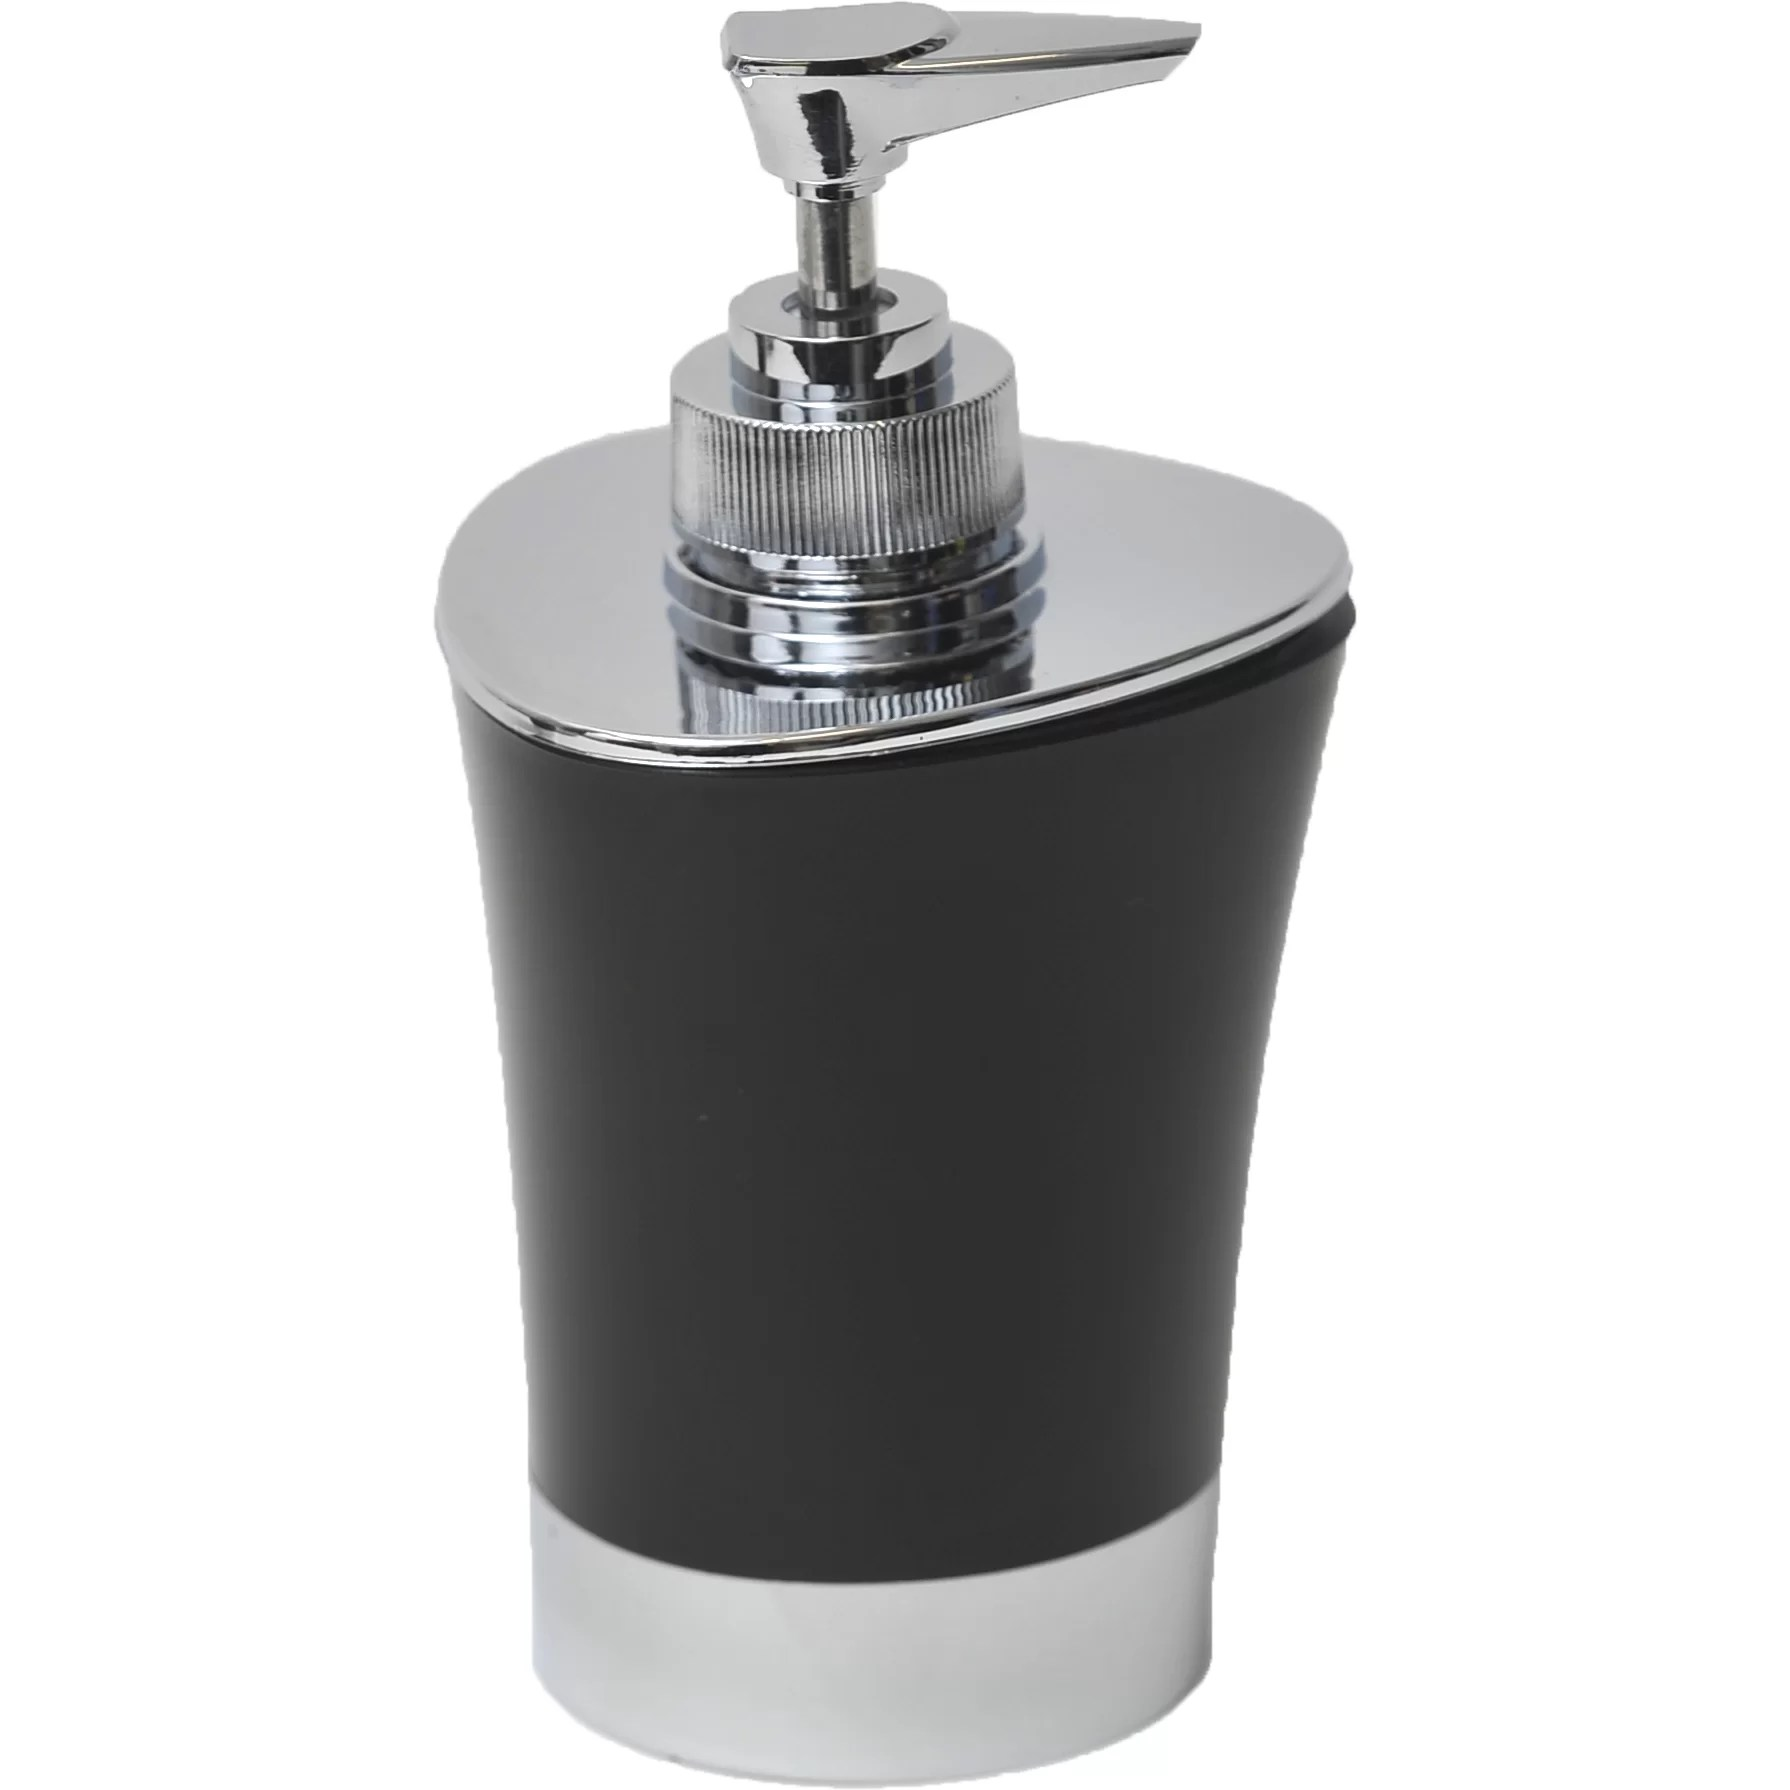 Restroom Soap Dispensers Evideco Bathroom Soap And Lotion Dispenser And Reviews Wayfair